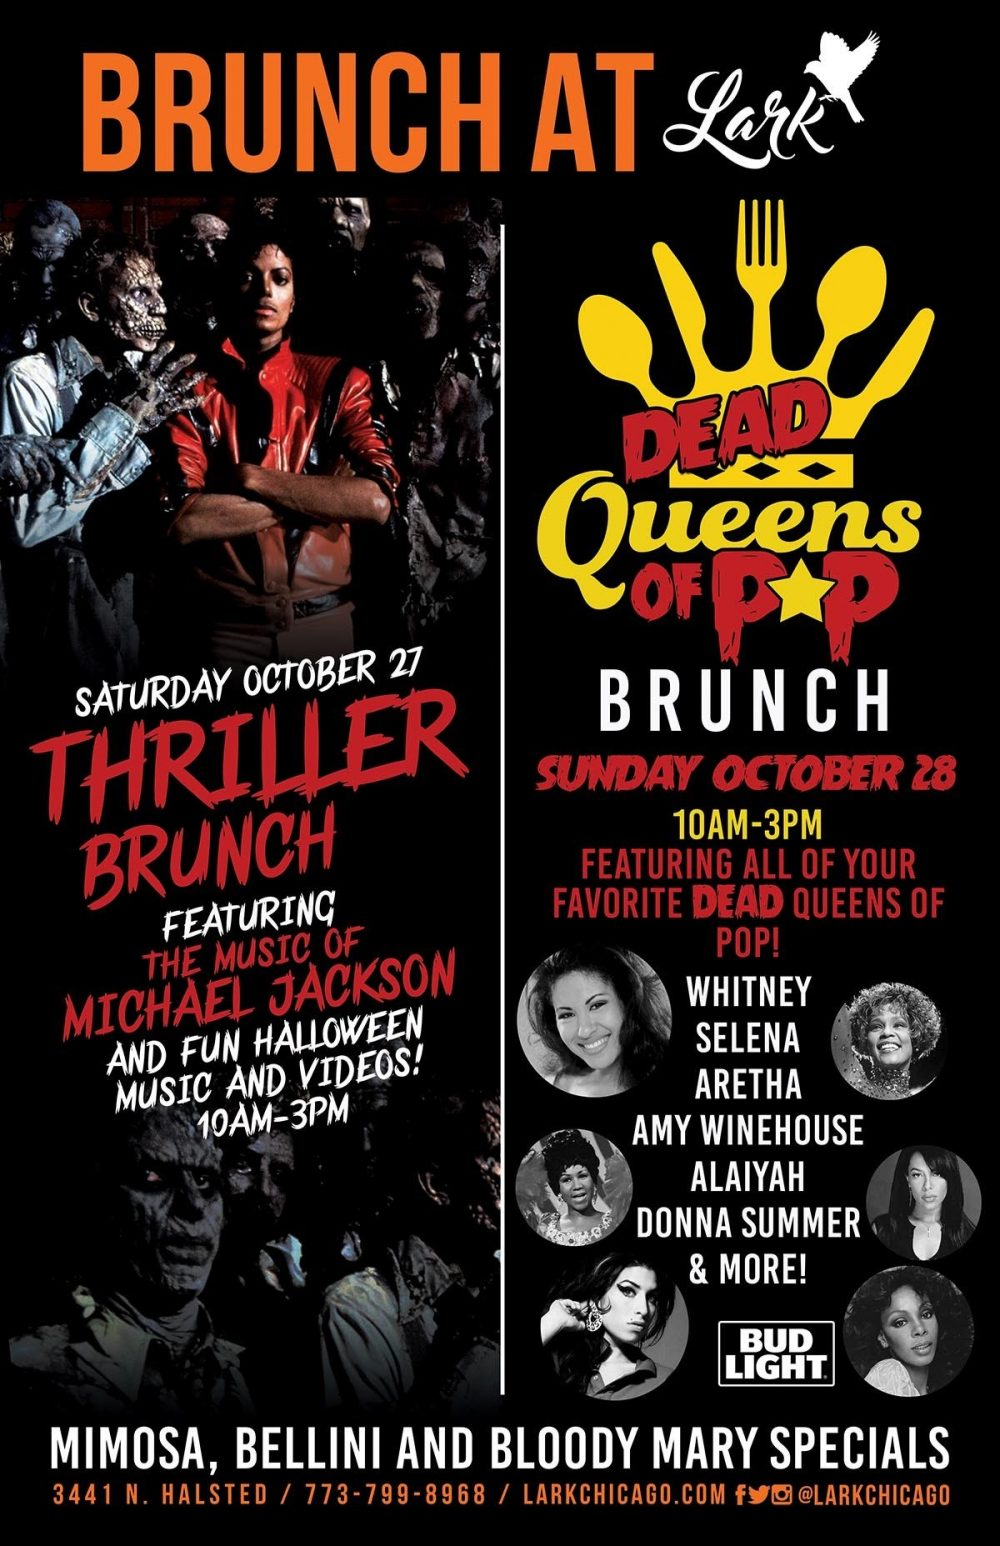 Lark Halloween 2018 Brunch Graphic